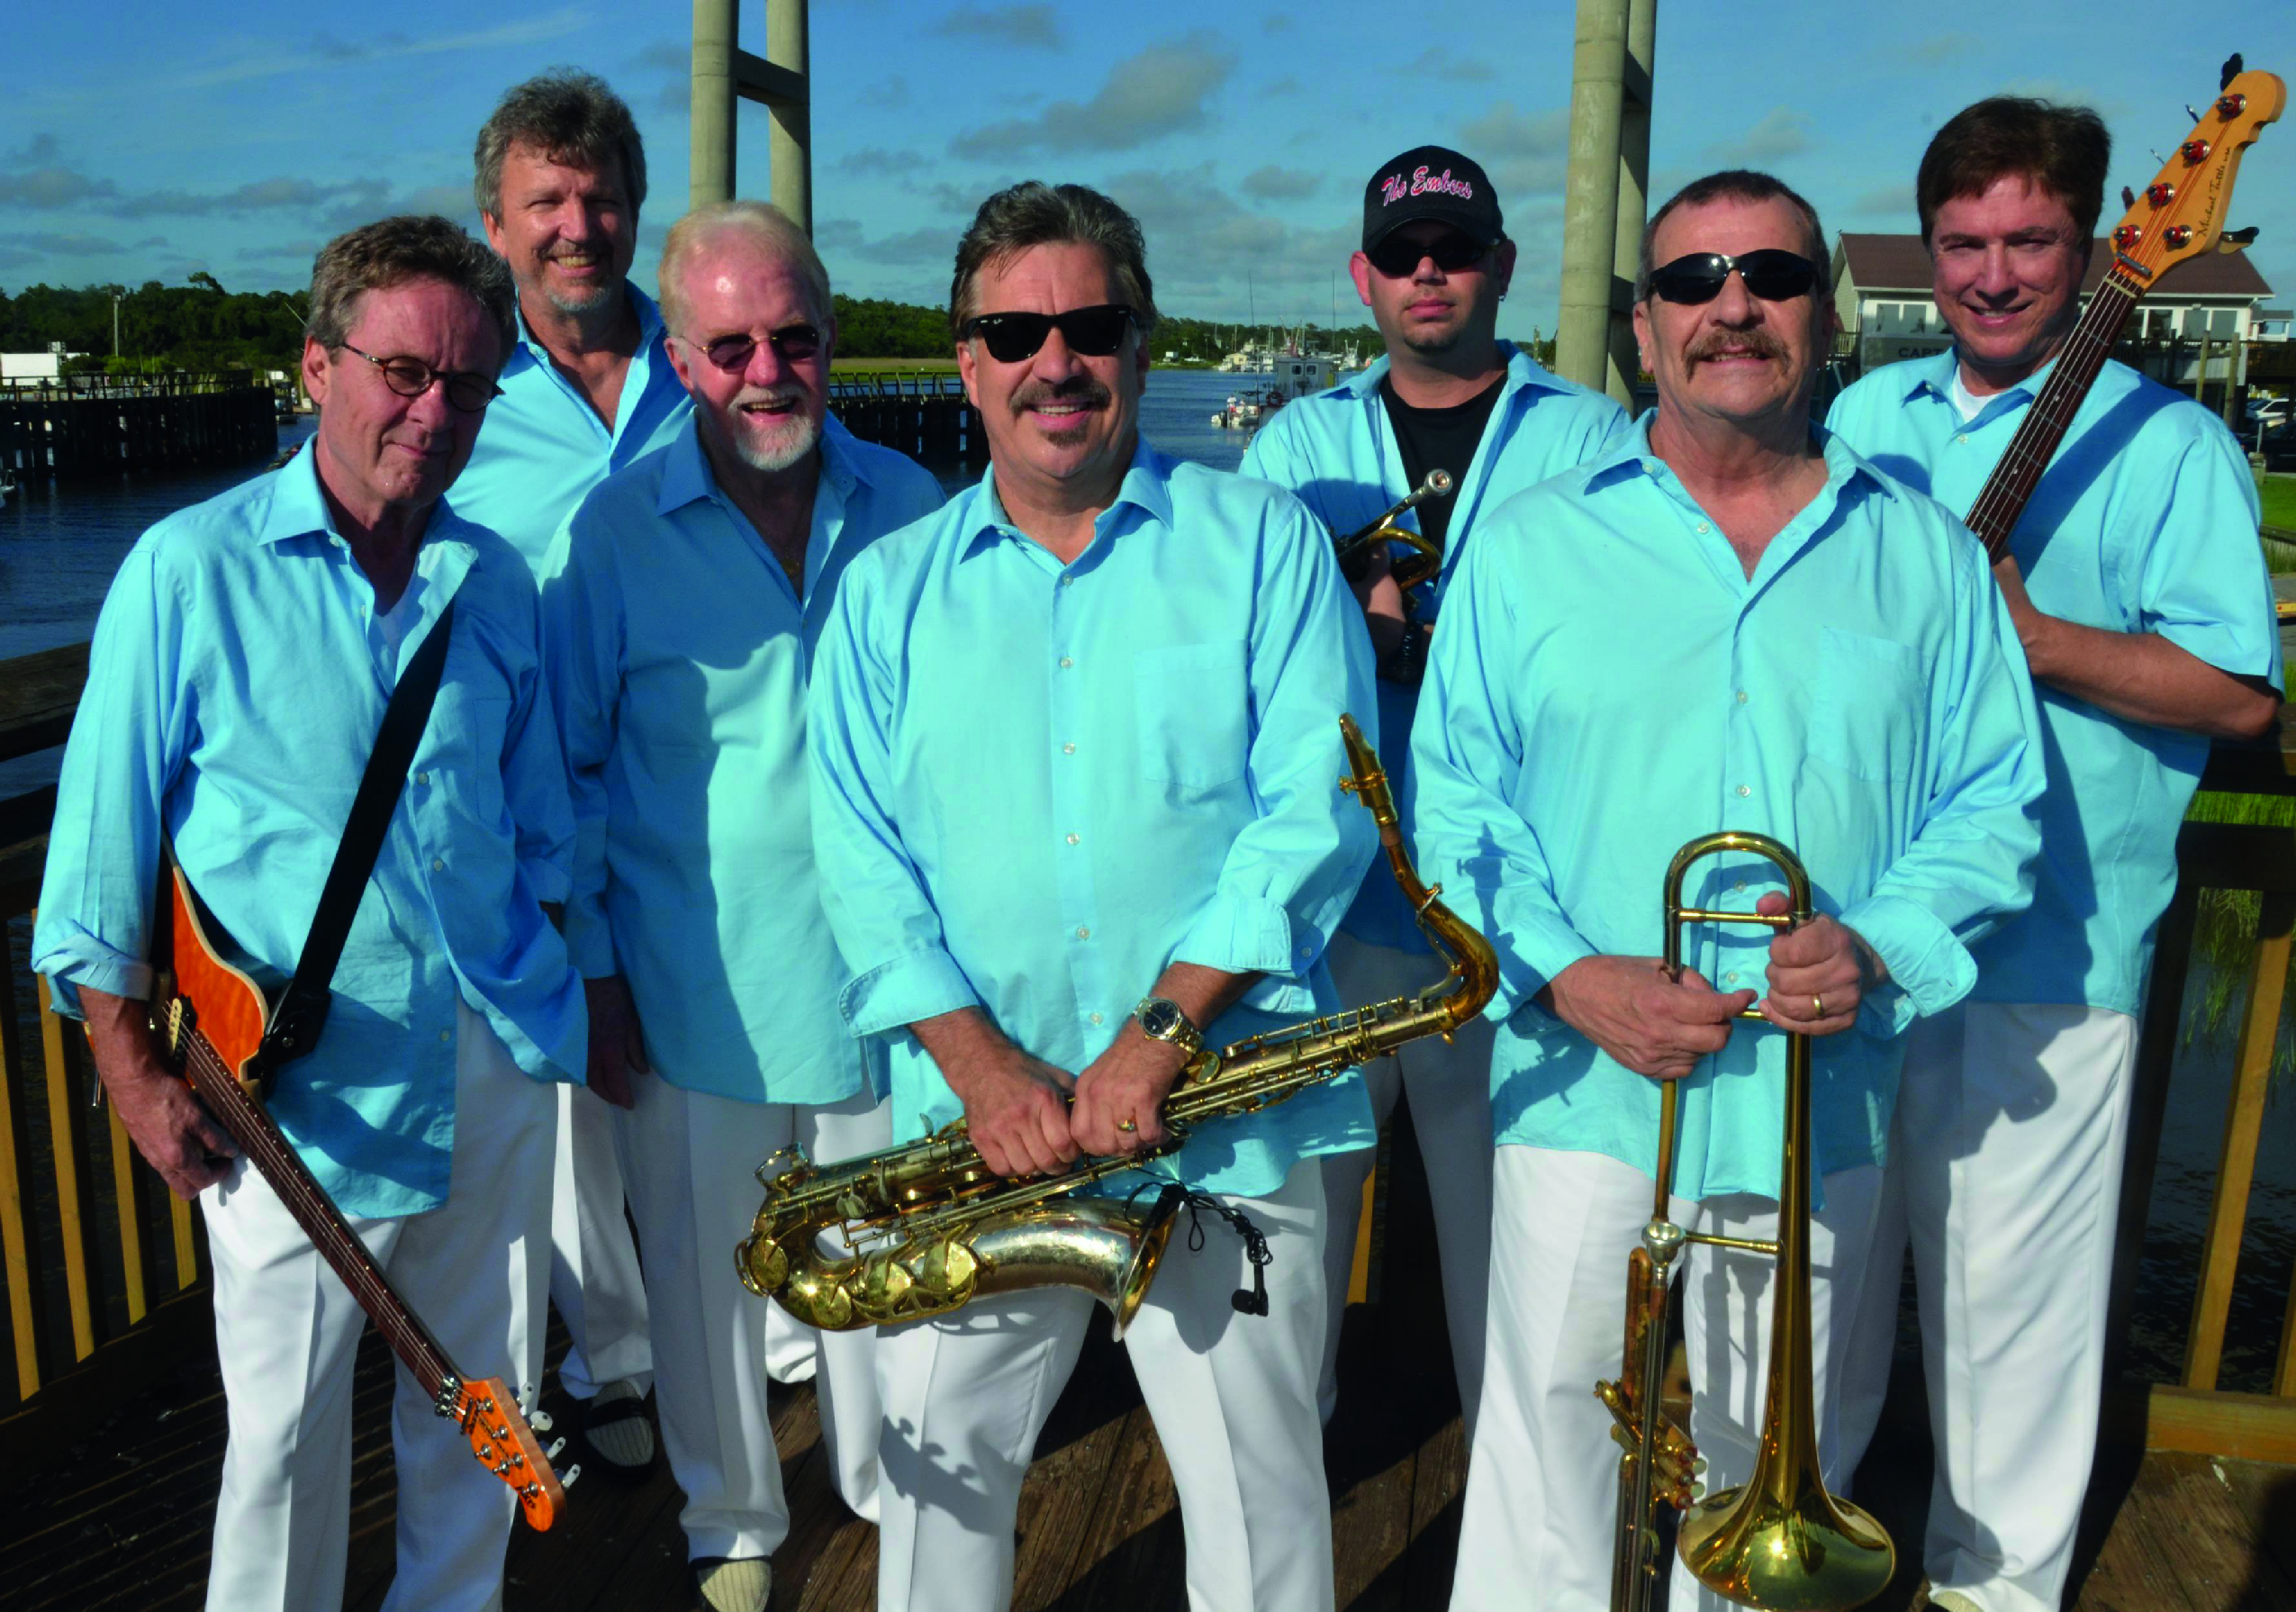 The Embers featuring Craig Woolard! Coming to Ahoskie!